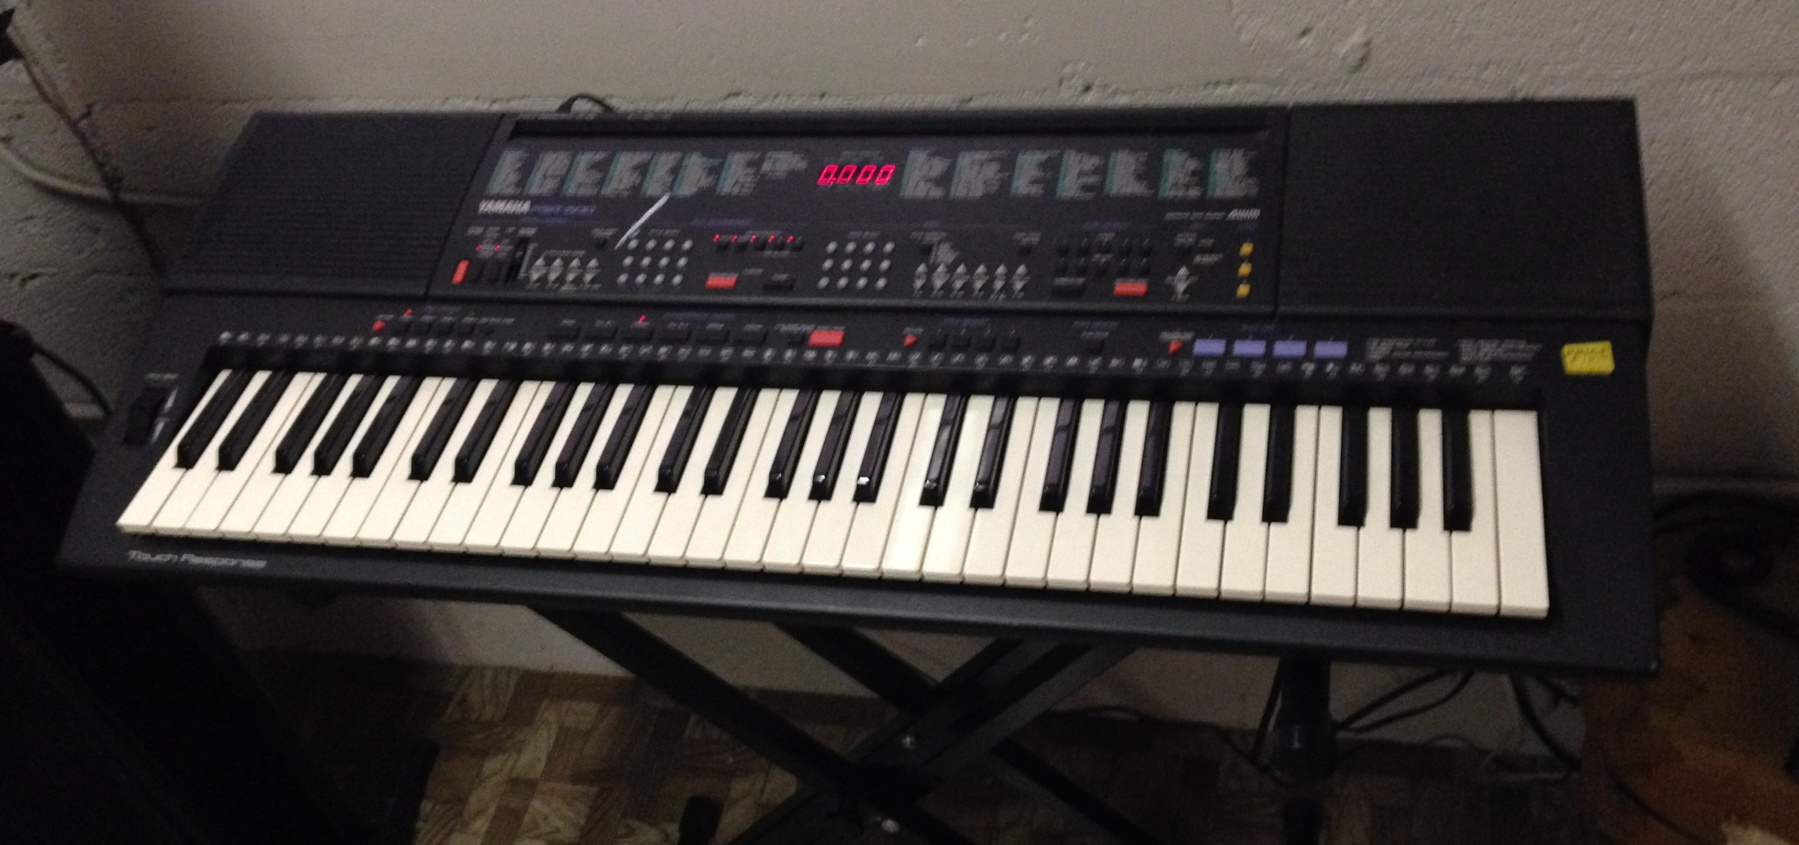 used yamaha psr 500 keyboard synthesizer organ work. Black Bedroom Furniture Sets. Home Design Ideas